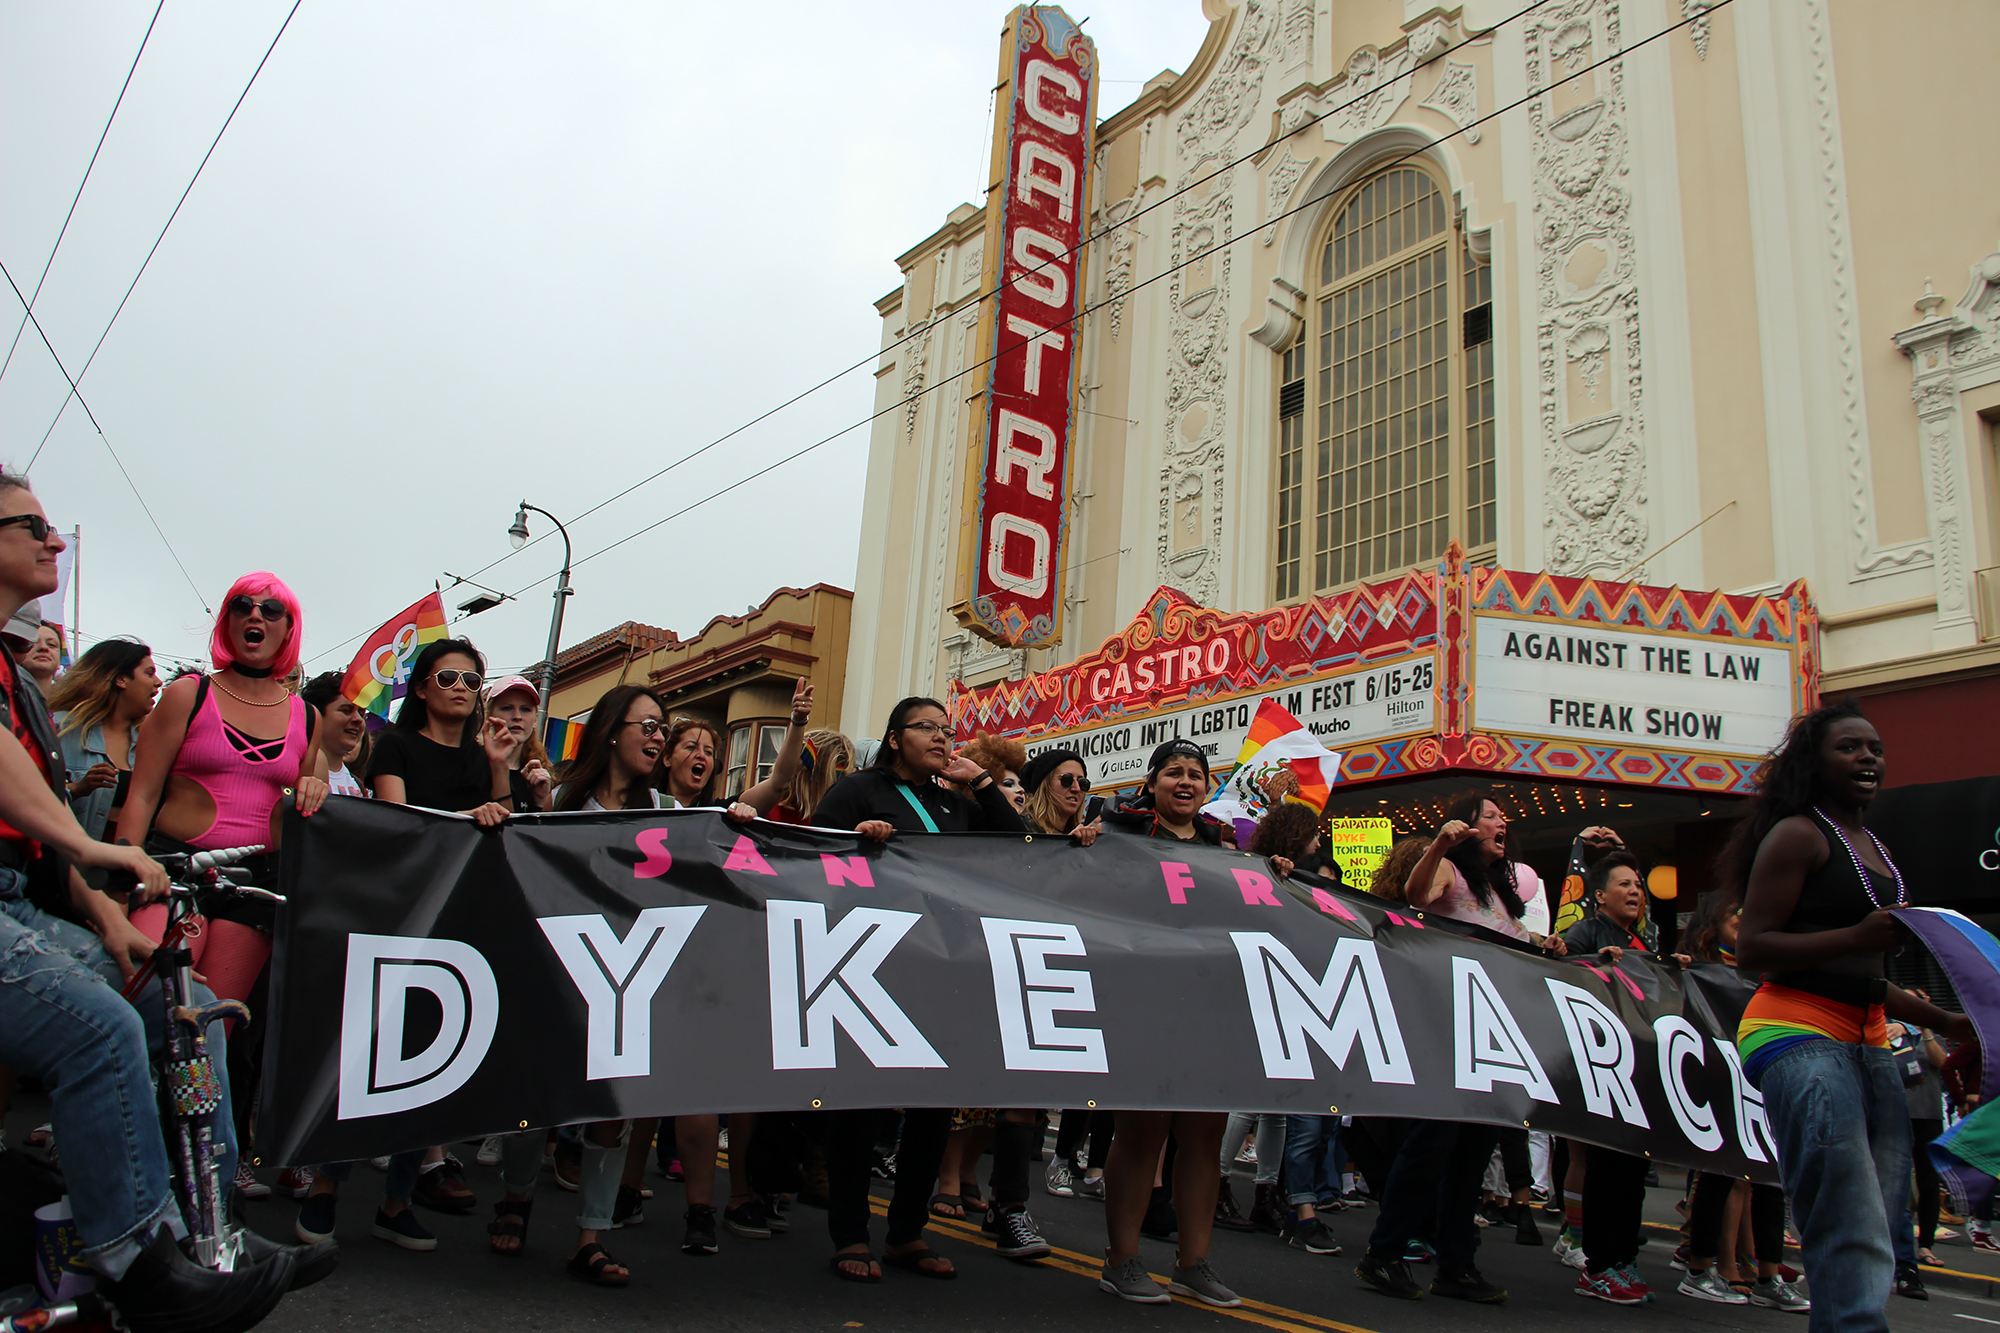 The 25th San Francisco Dyke March 2017